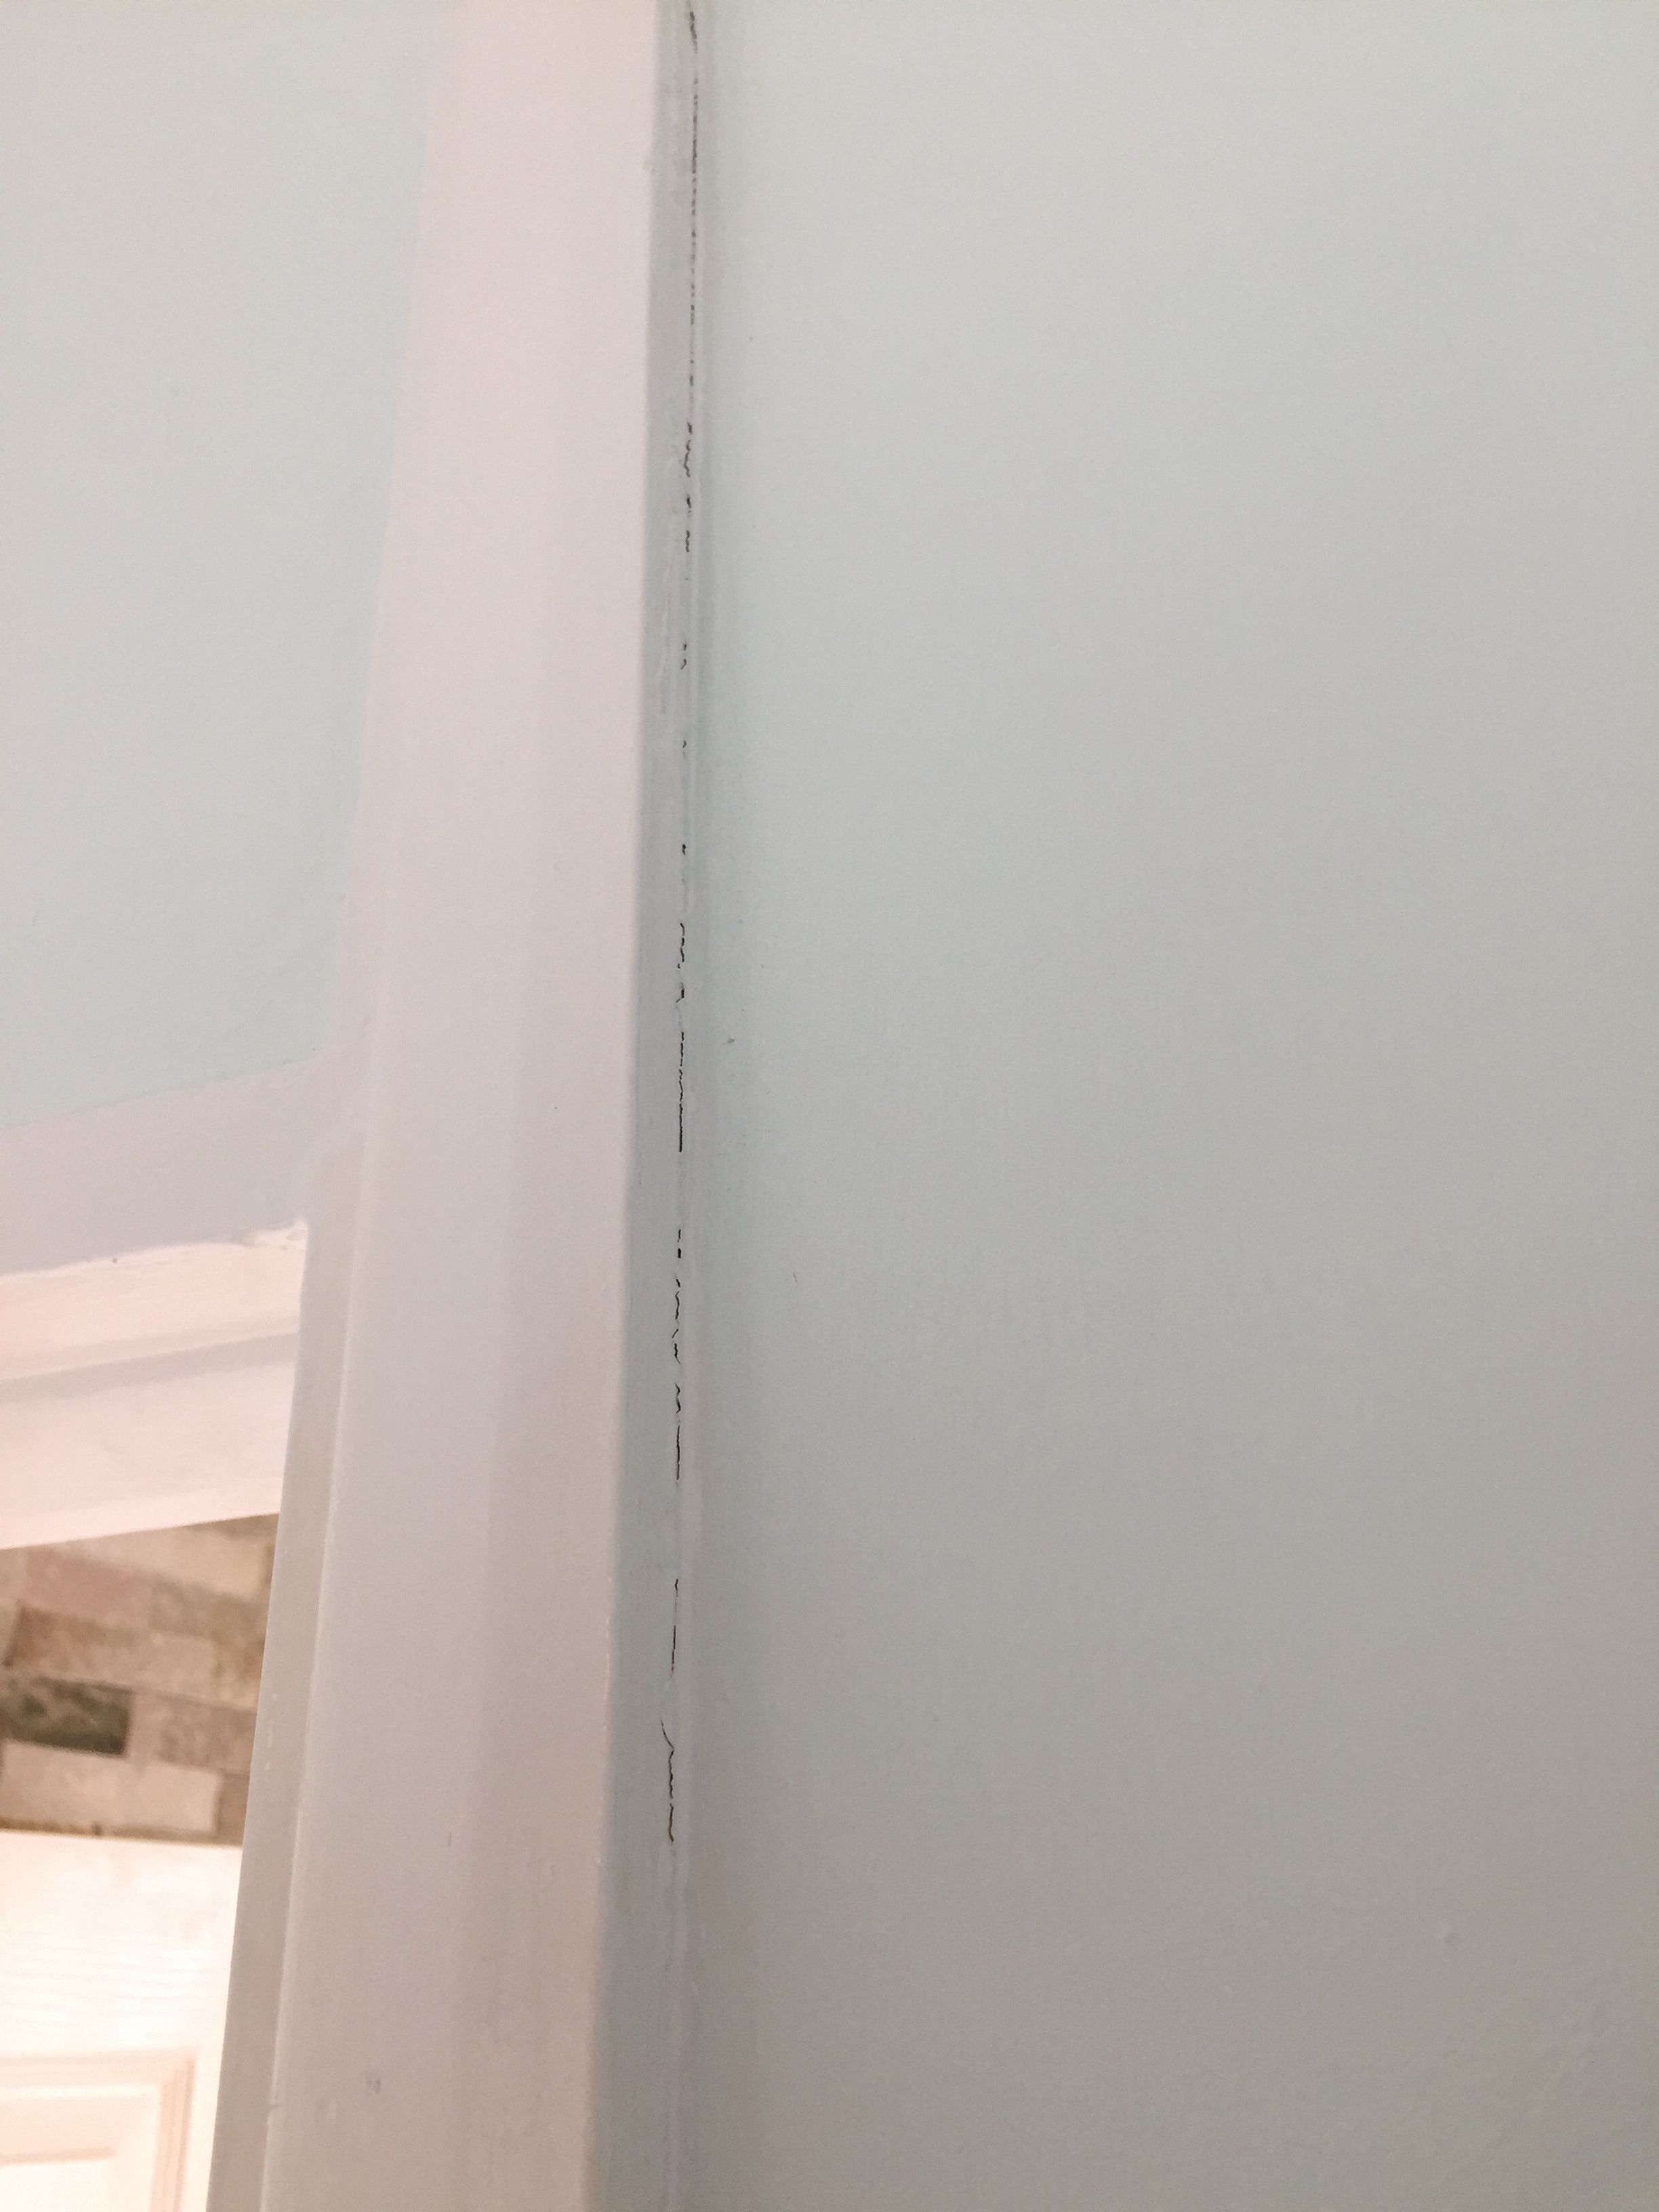 Painting cracks between painted wall and painted door frame (hallway ...